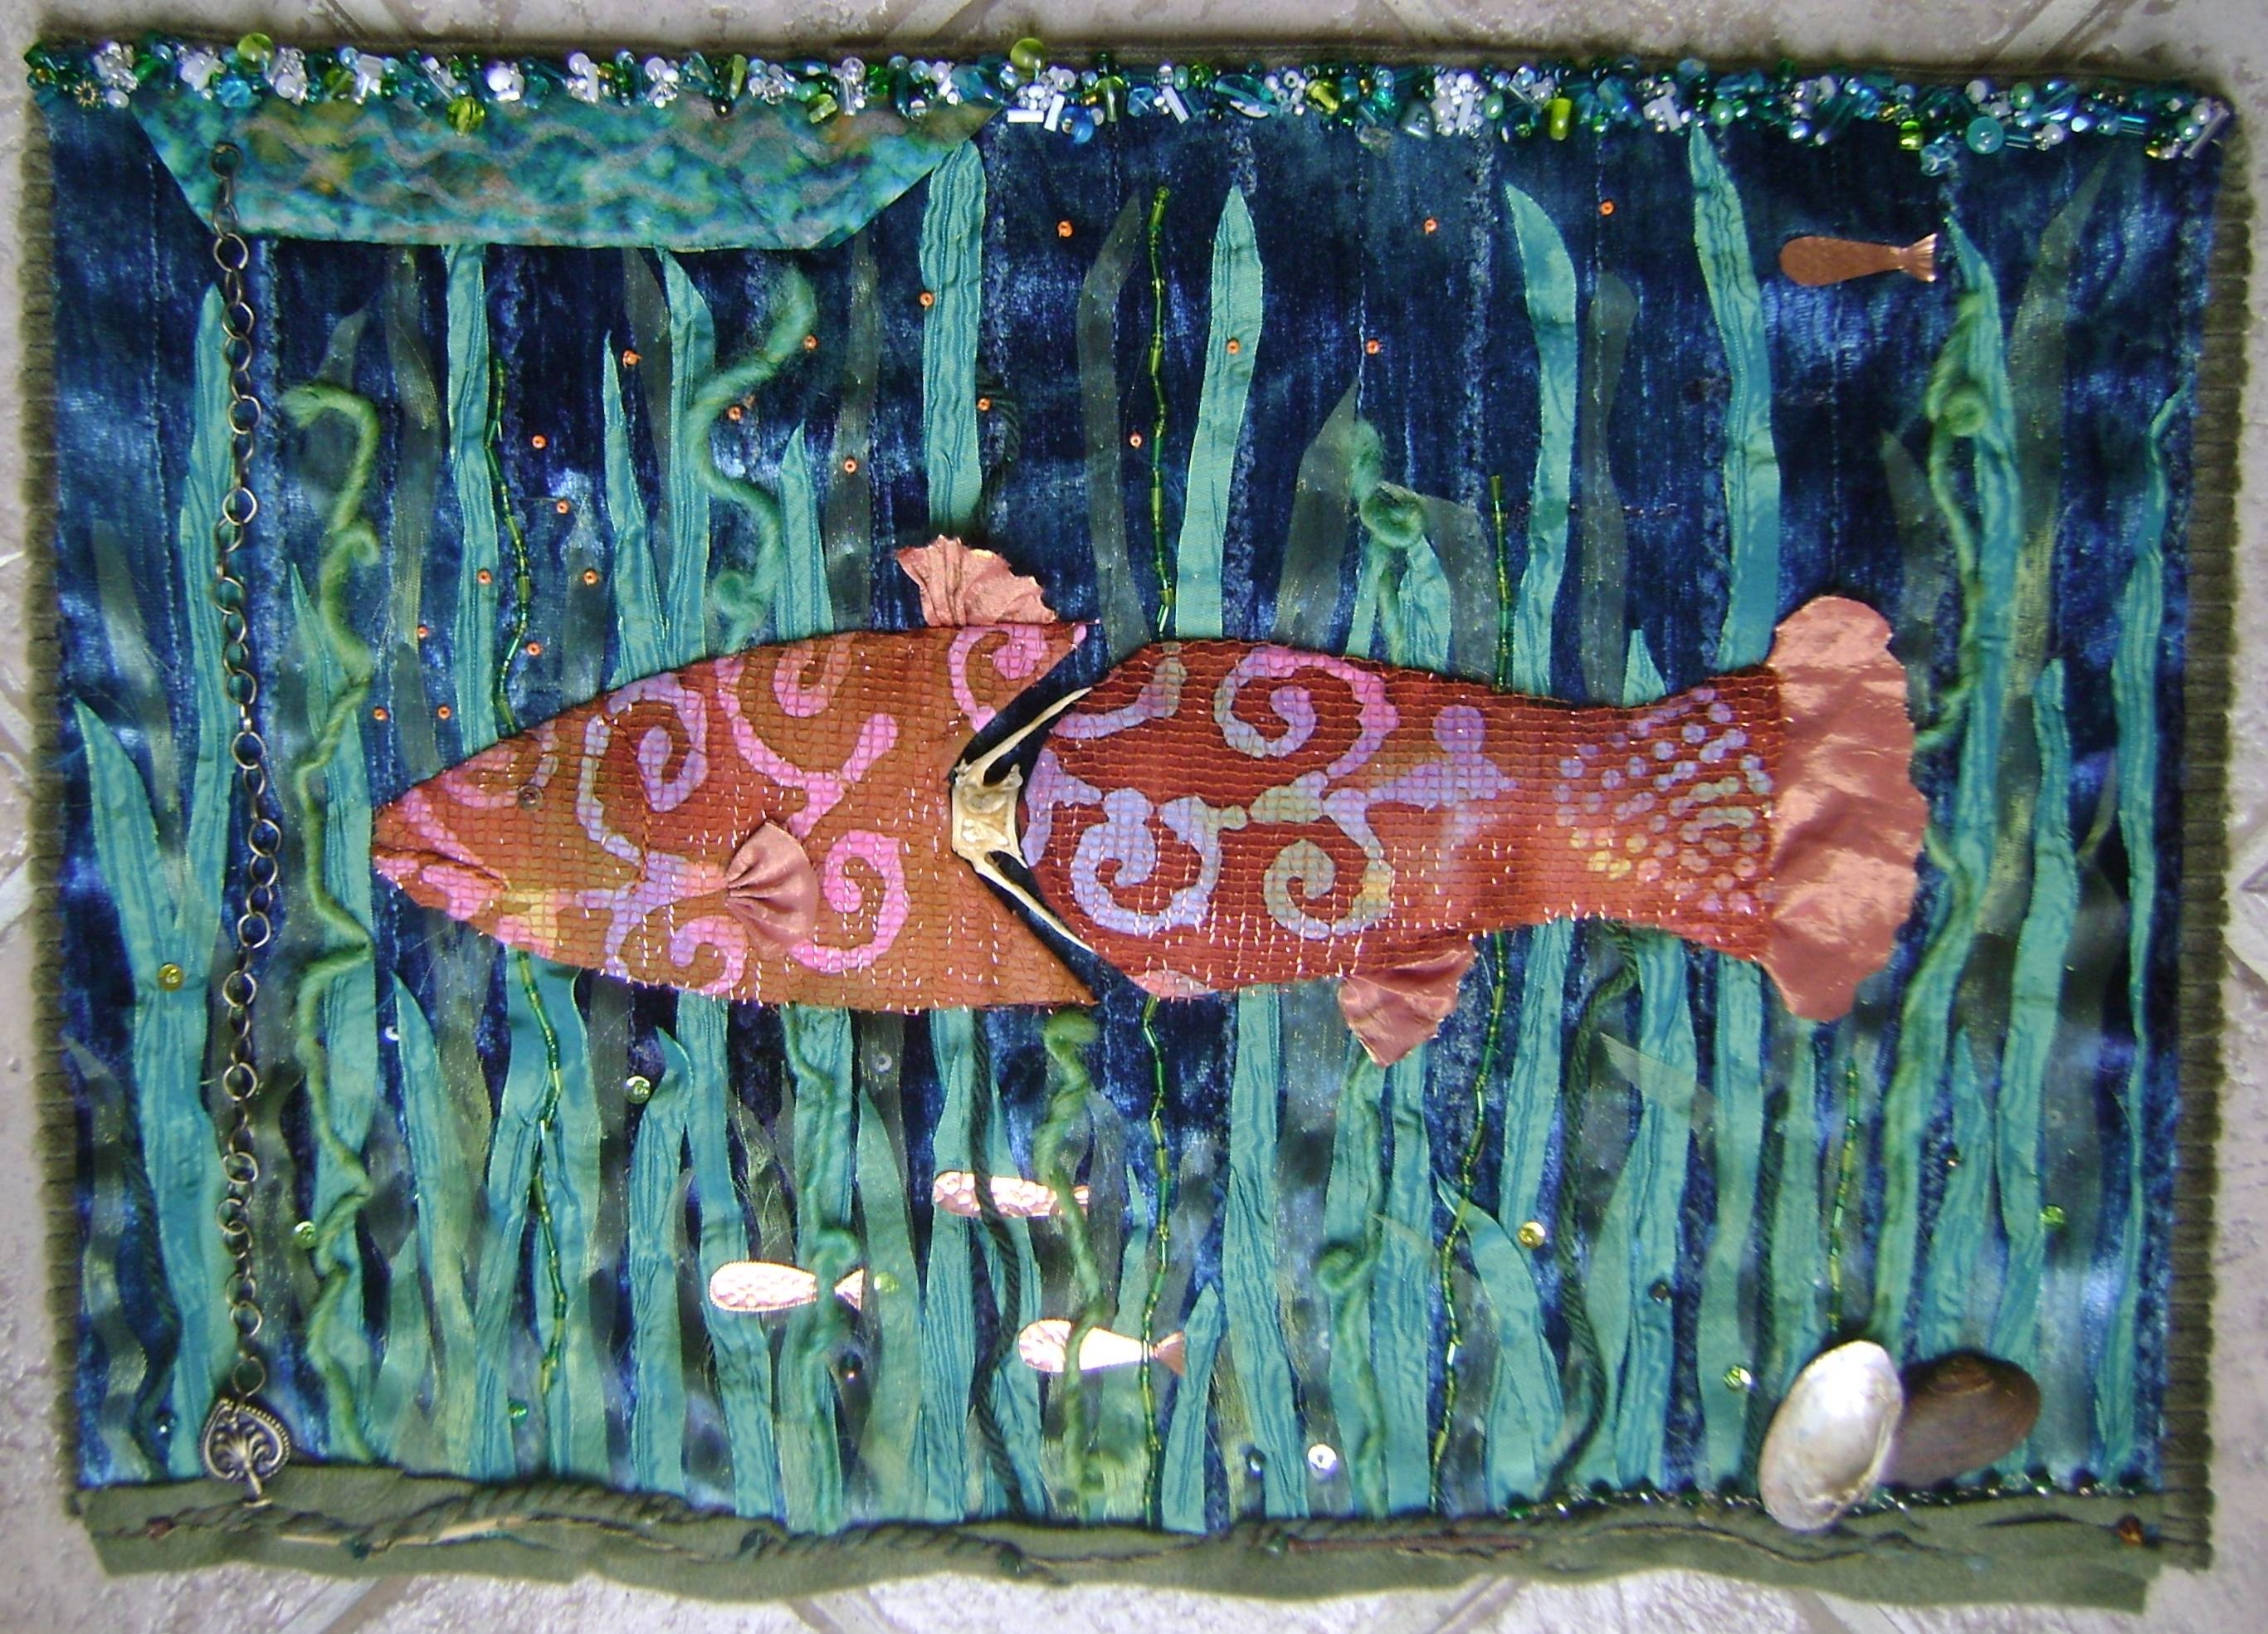 Bone Fish Fiber Art Wall Hanging – Artfilled Notions With Regard To Best And Newest Fish Bone Wall Art (View 6 of 20)